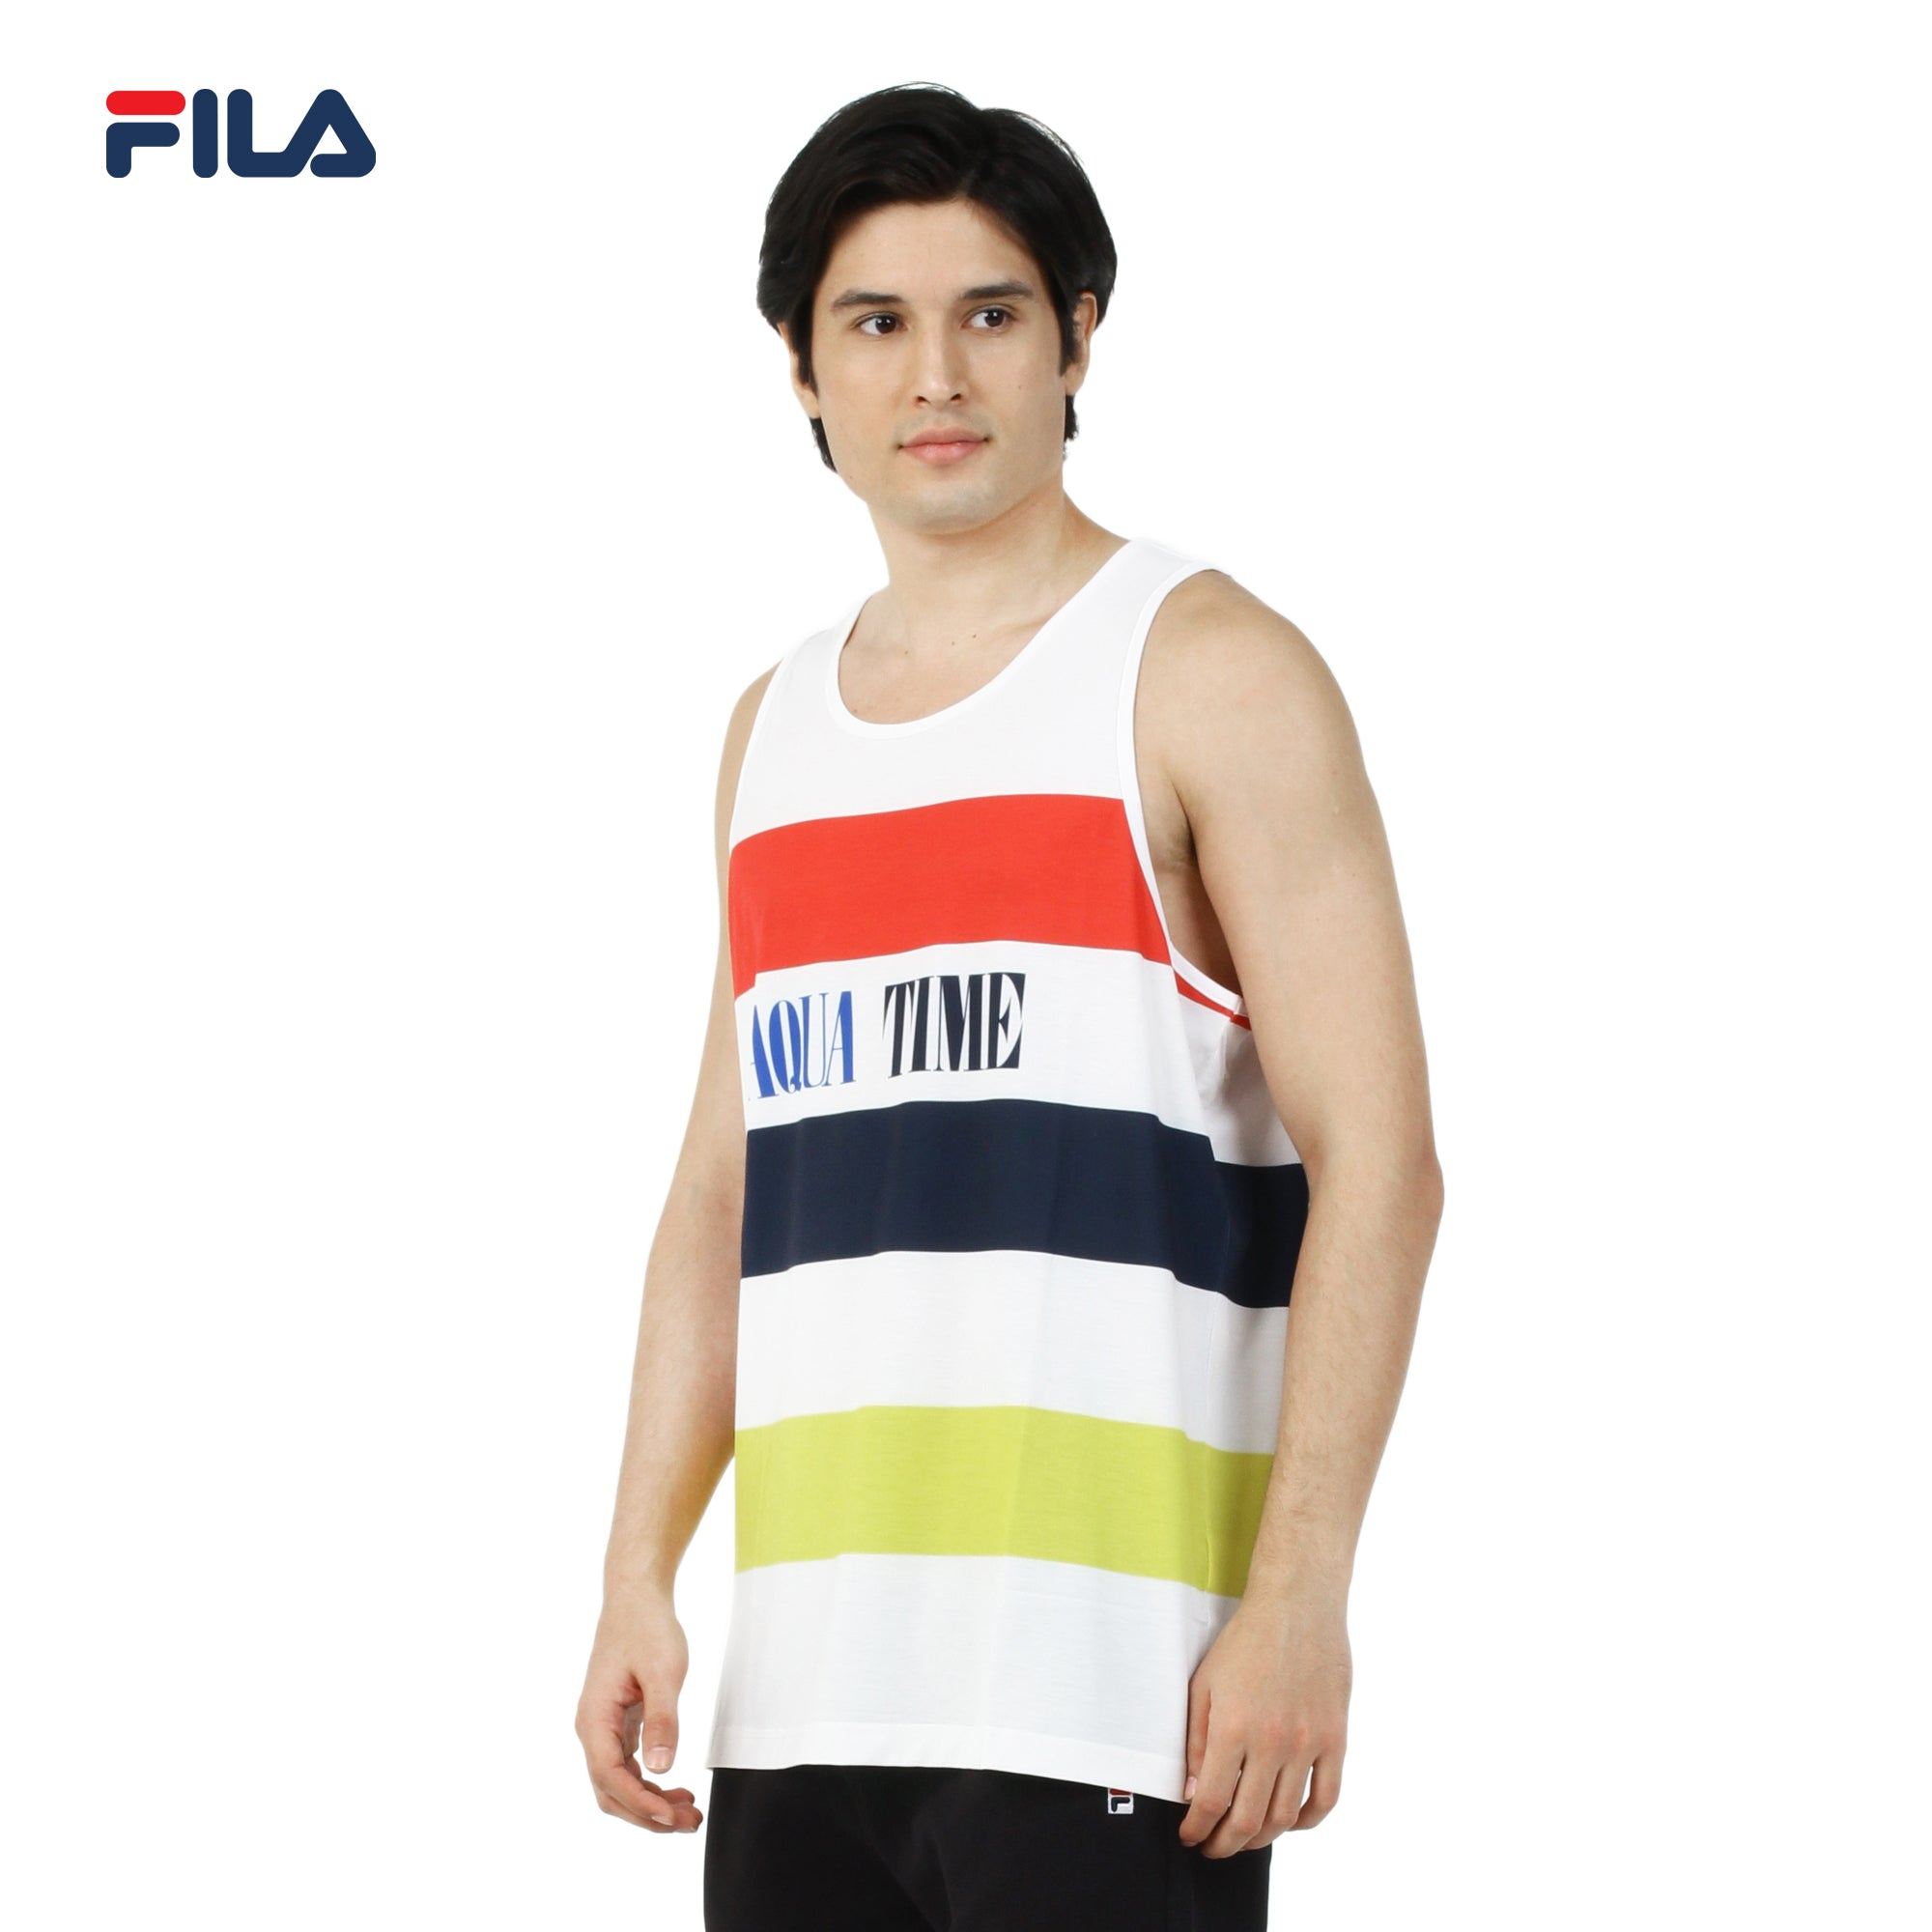 Fila Men's Sleeveless Shirt White